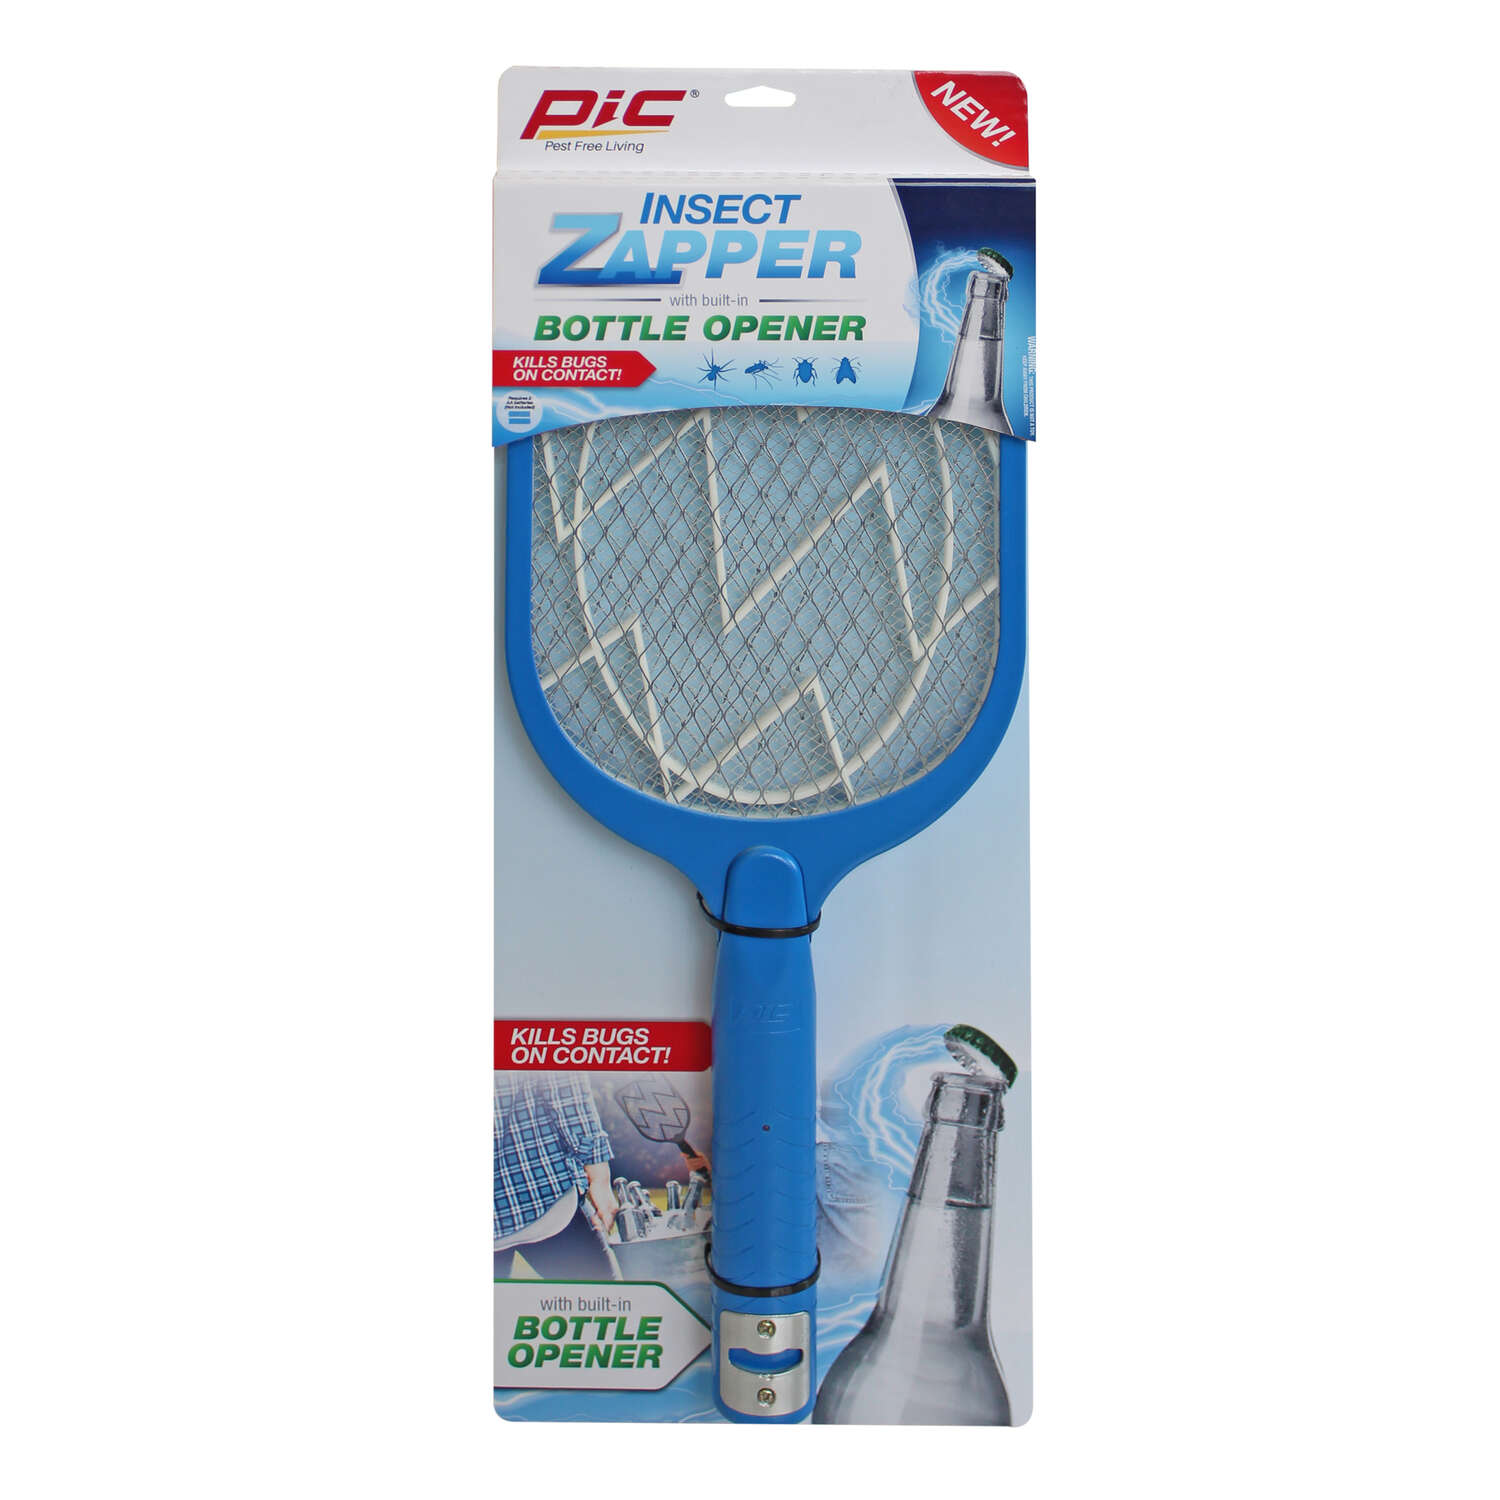 PIC Insect Zapper Ace Hardware